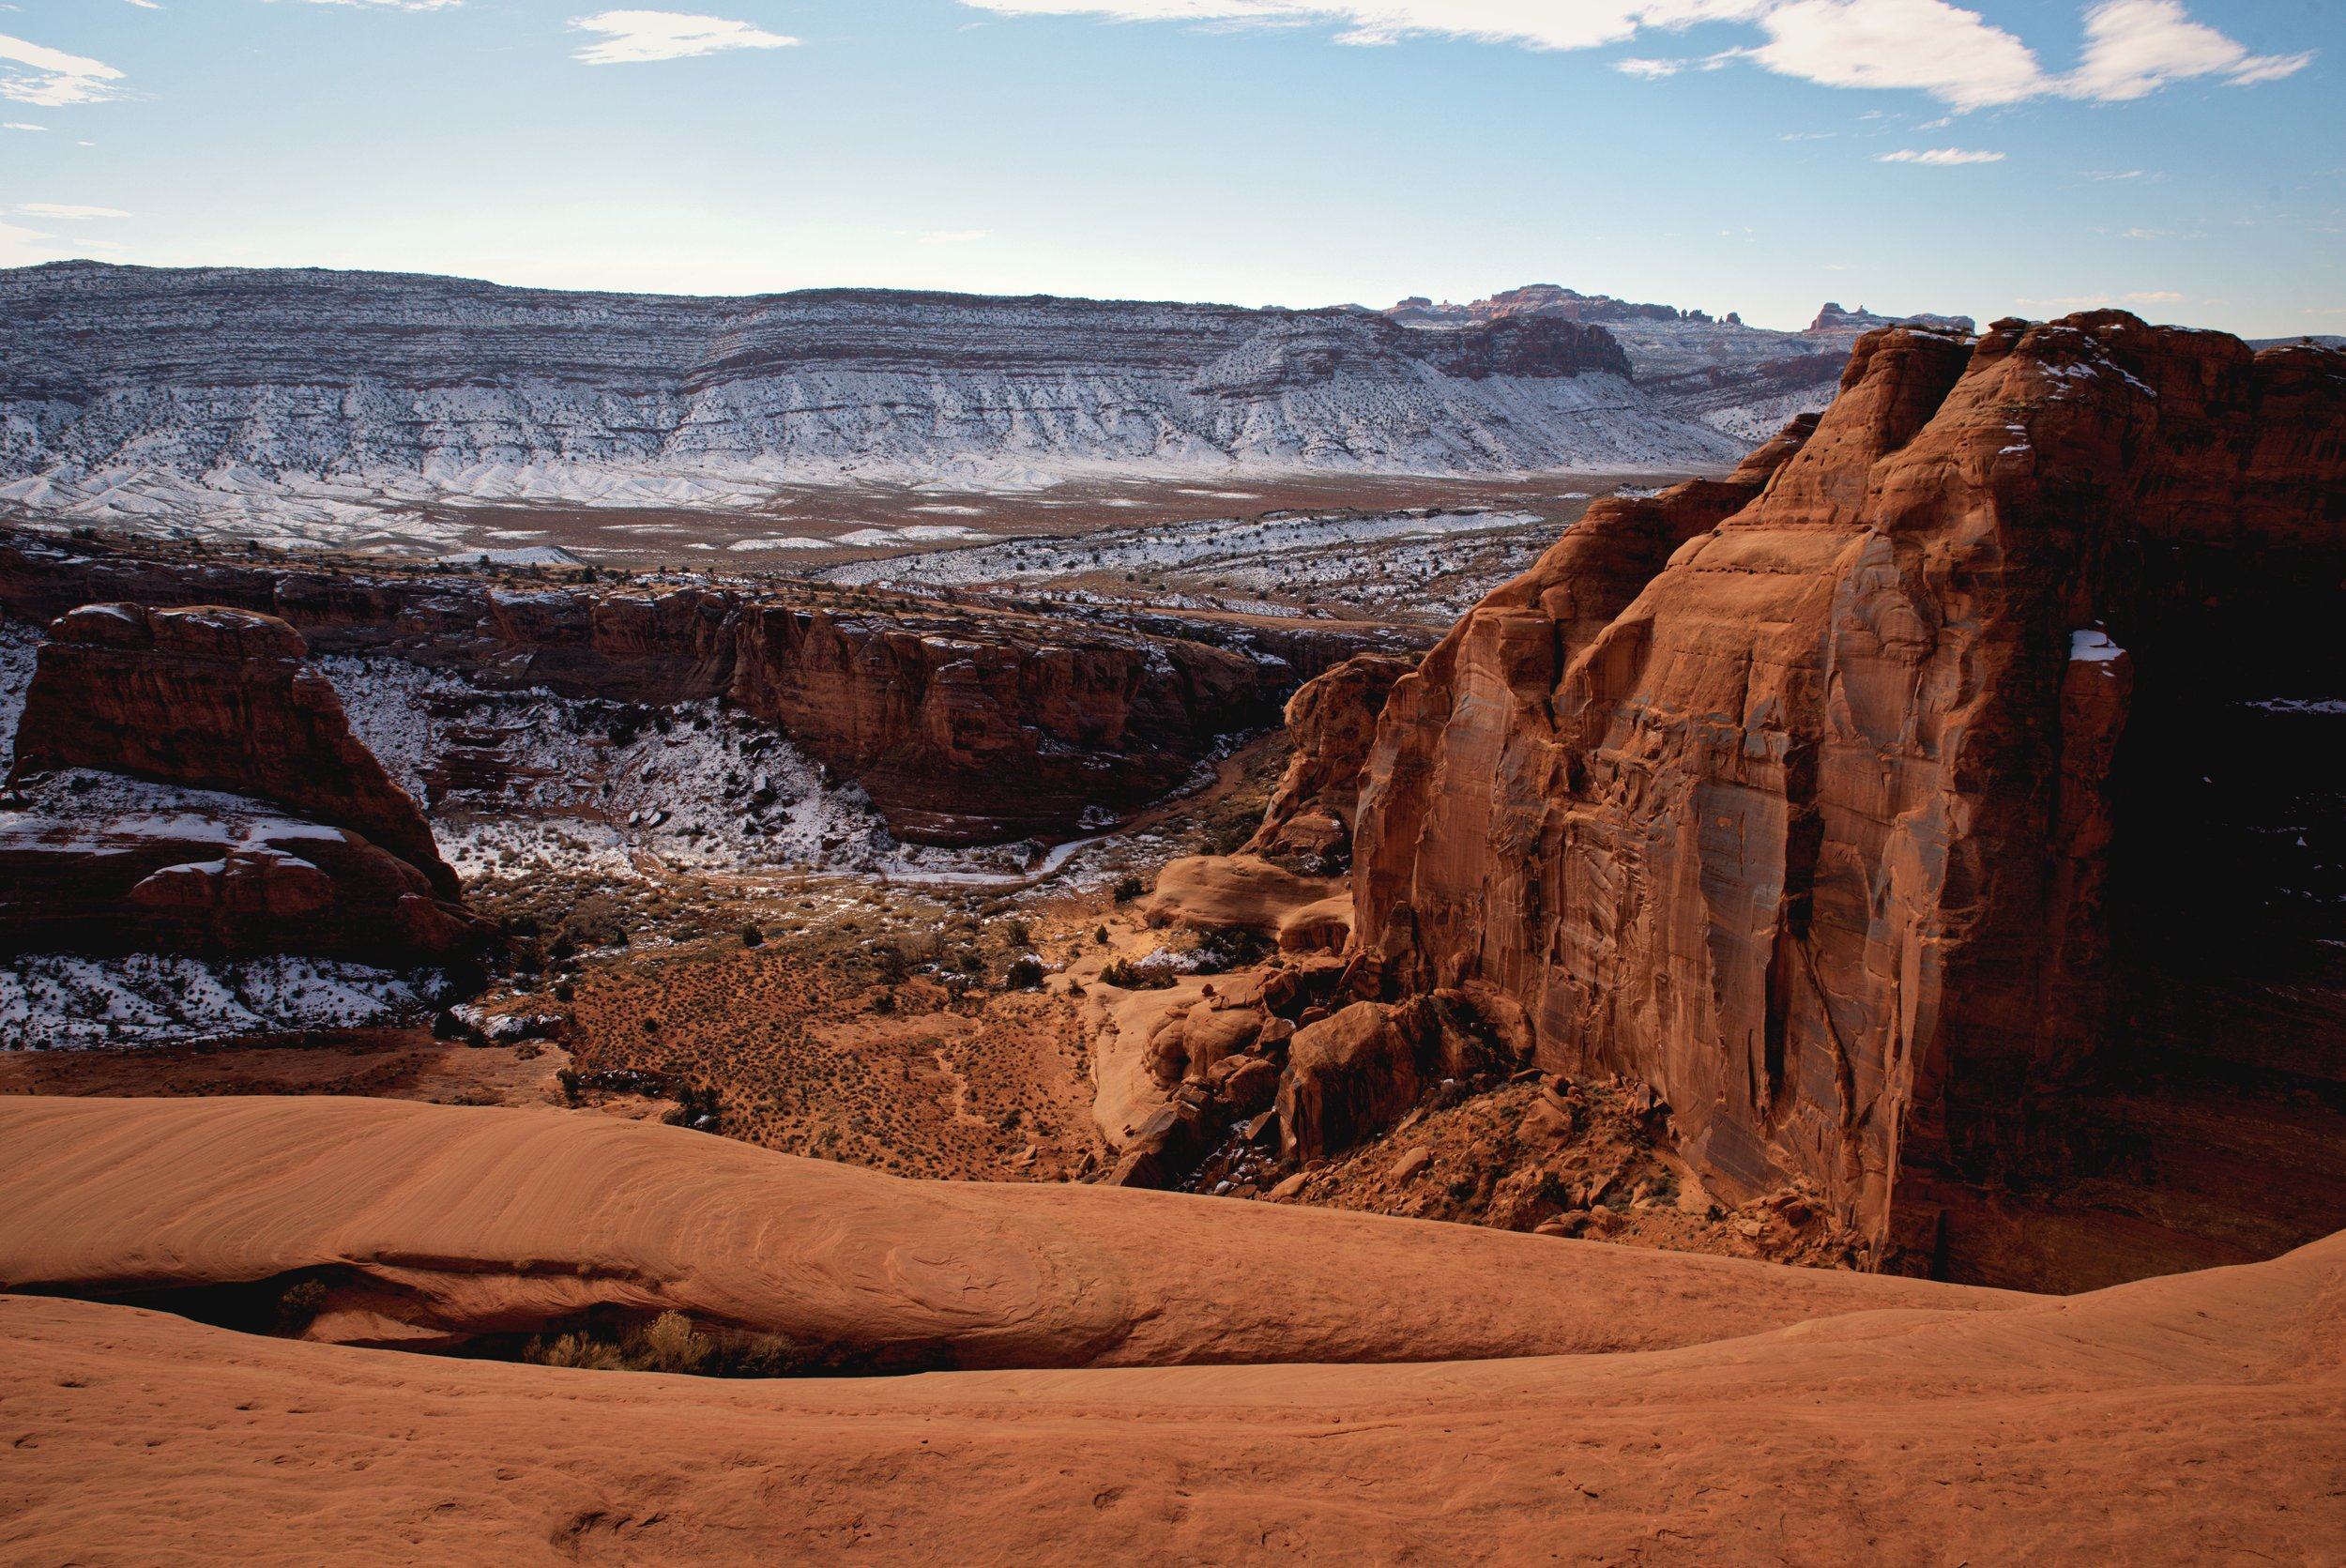 The trail to Delicate Arch has beautiful views along with the beautiful arch.